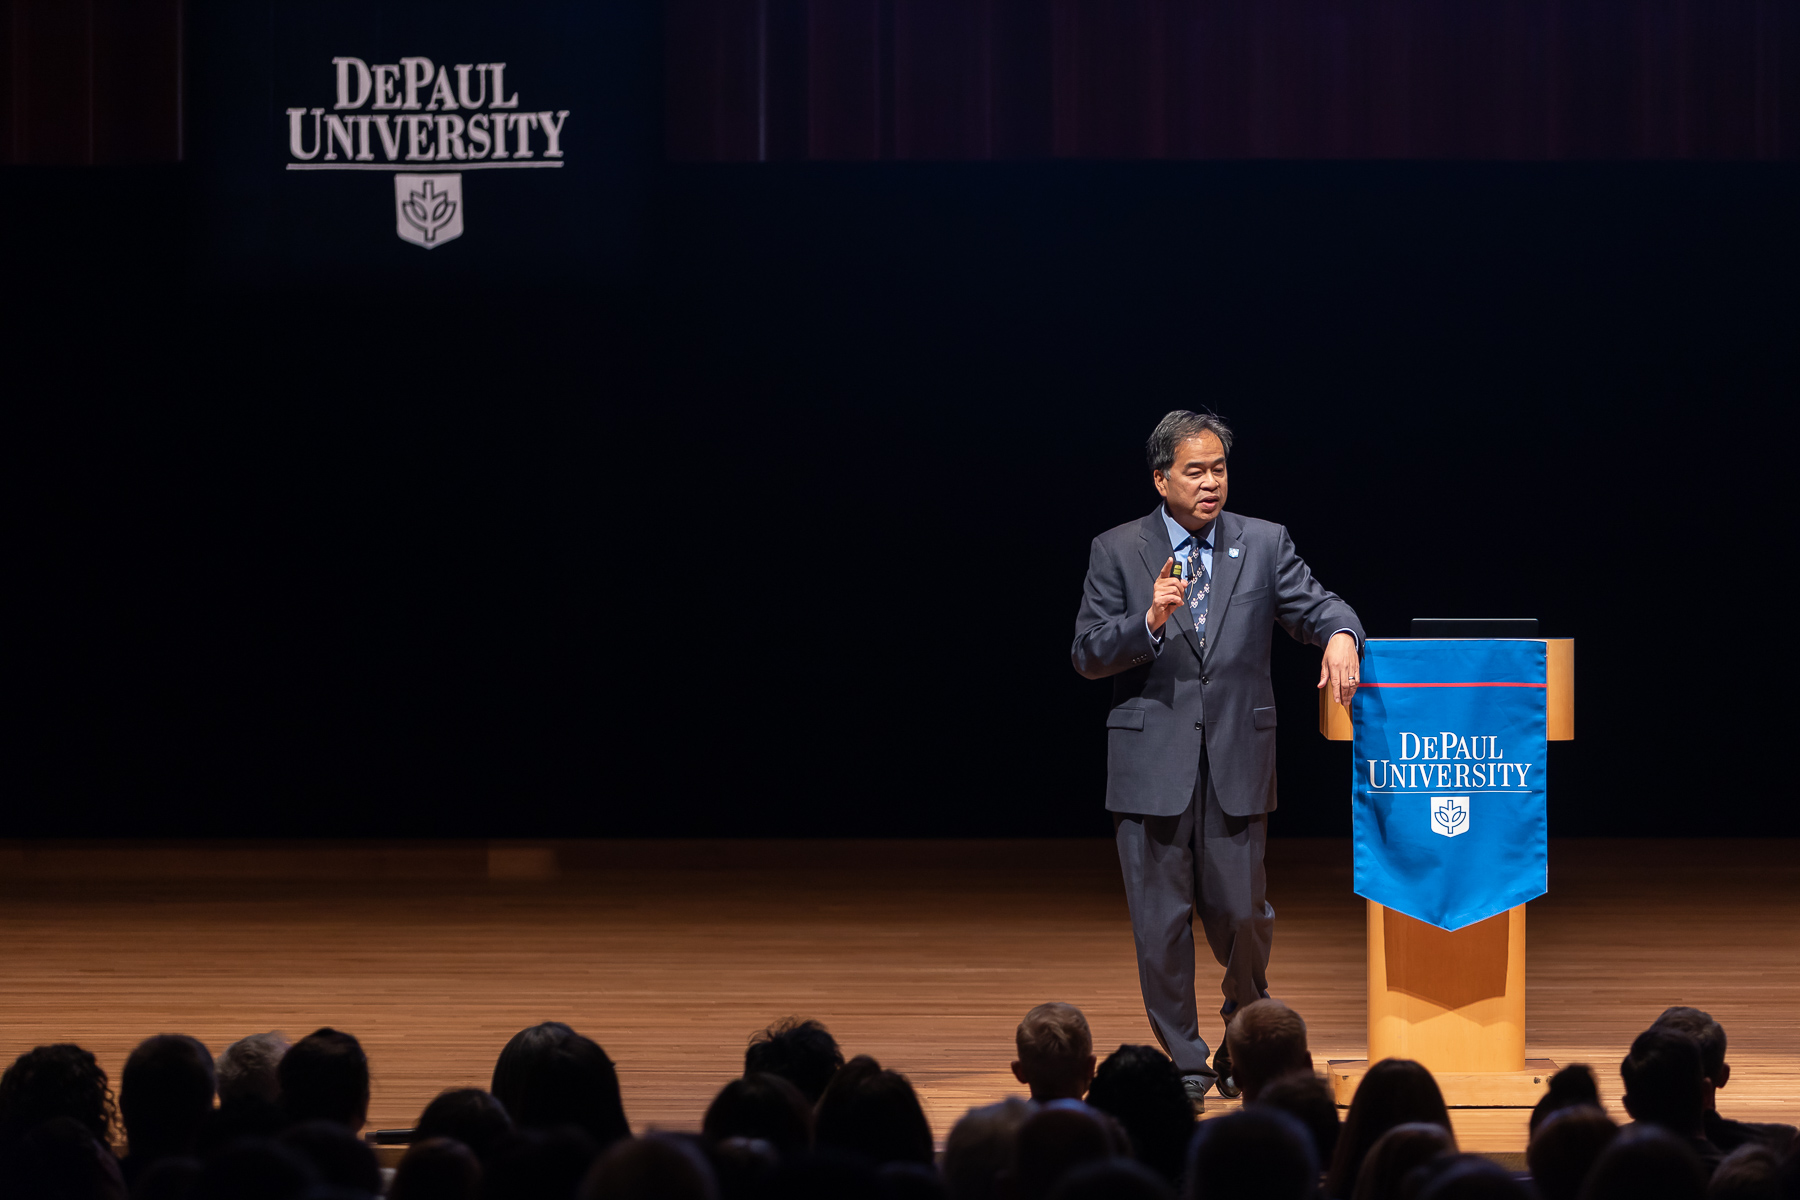 A.Gabriel Esteban, Ph.D., president of DePaul University, presents the State of the University address to faculty and staff members, October 4. (DePaul University/Jeff Carrion)​